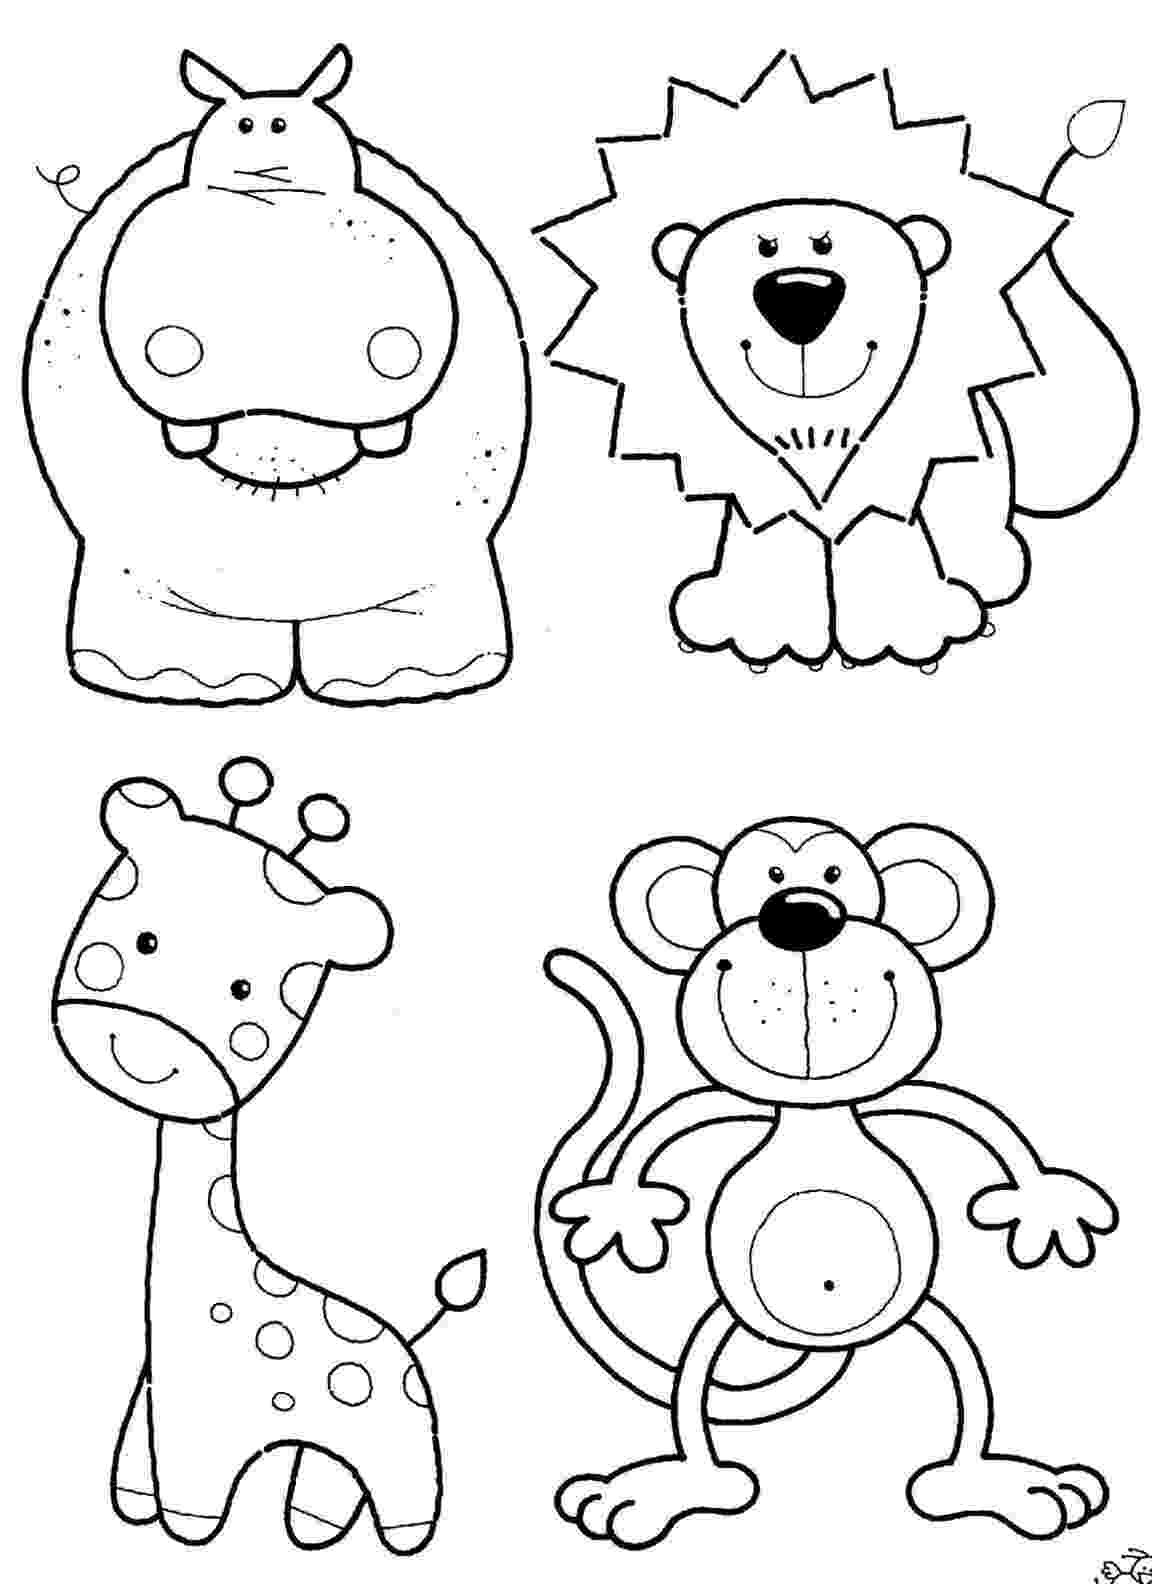 animal colouring pages free jungle animal coloring pages to download and print for free colouring animal pages free